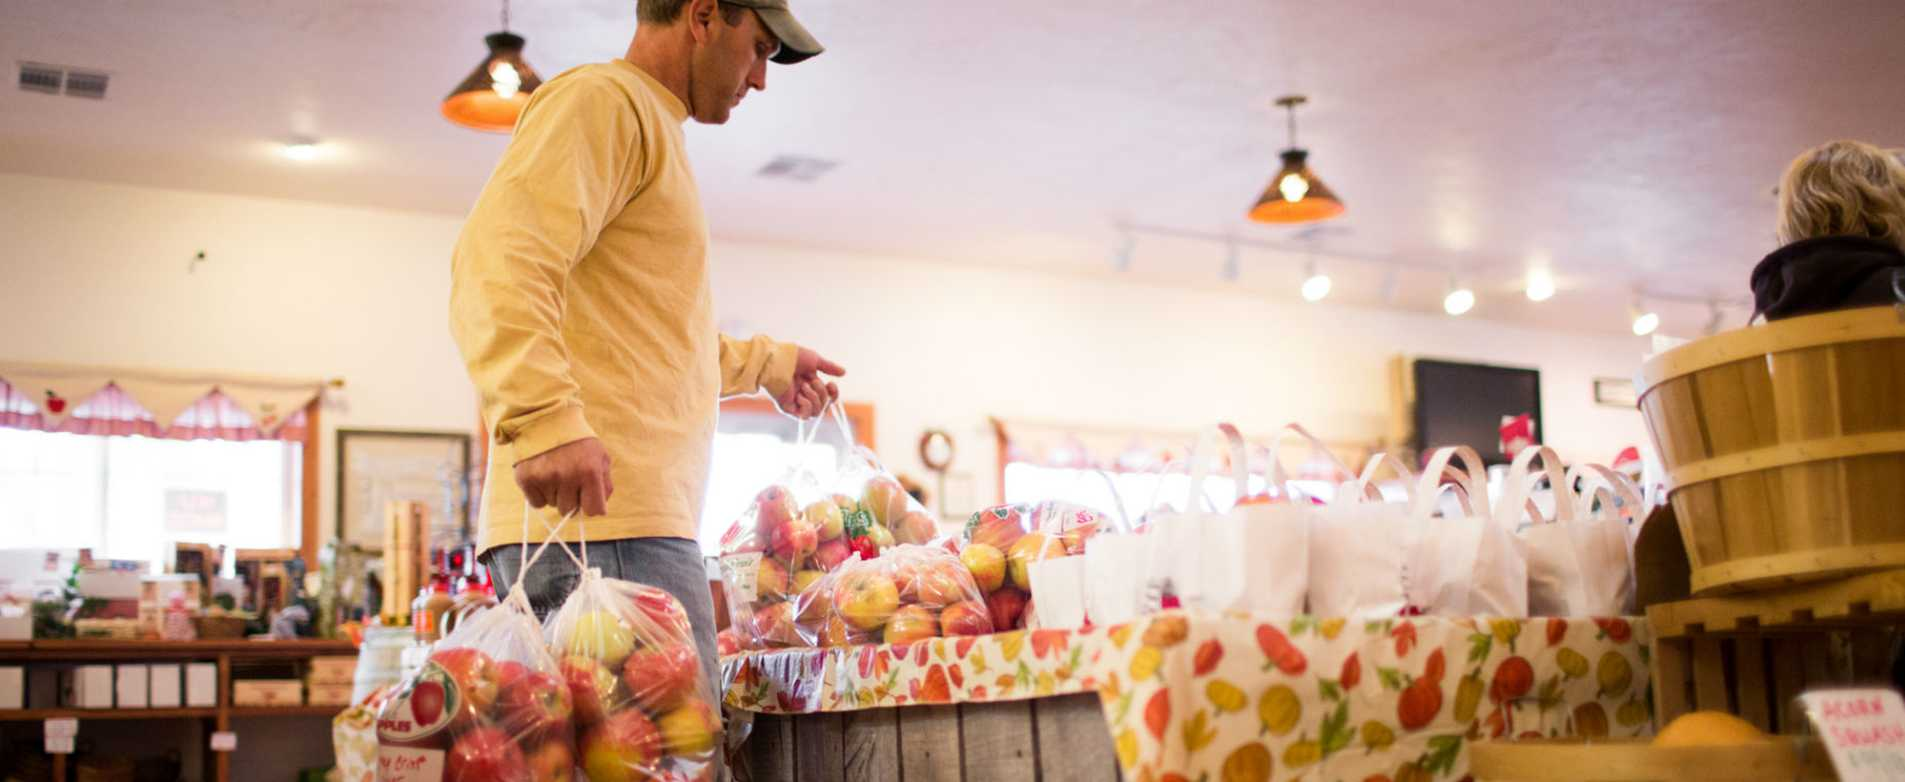 Shopping for Apples at Orchard Country Winery and Market